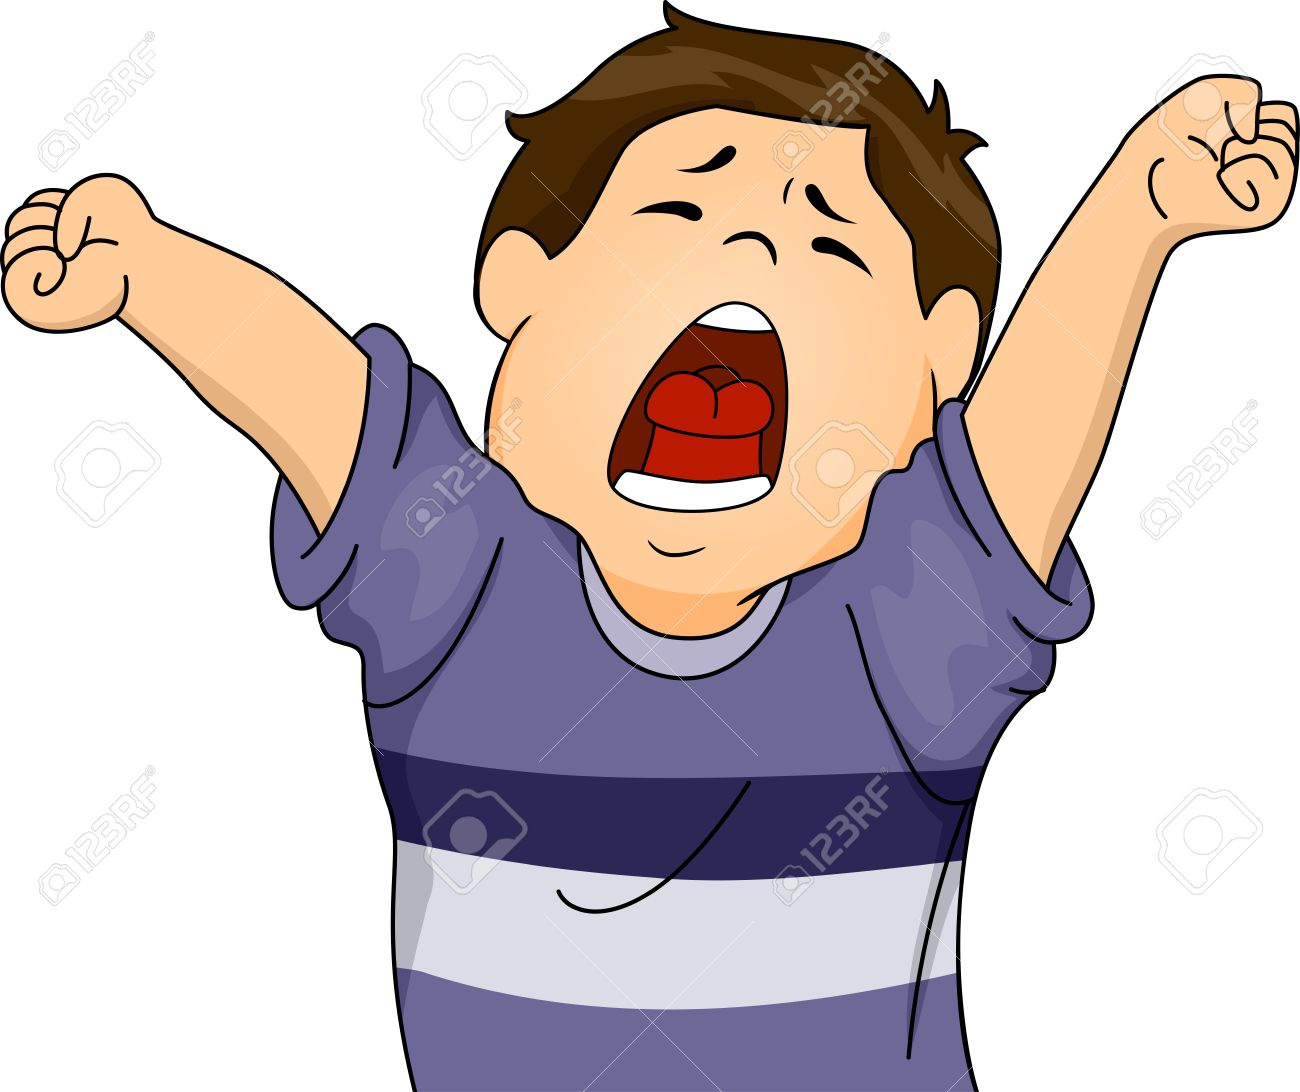 Illustration Featuring A Boy Letting Out A Big Yawn While Stretching Royalty Free Cliparts Vectors And Stock Illustration Image 33819239